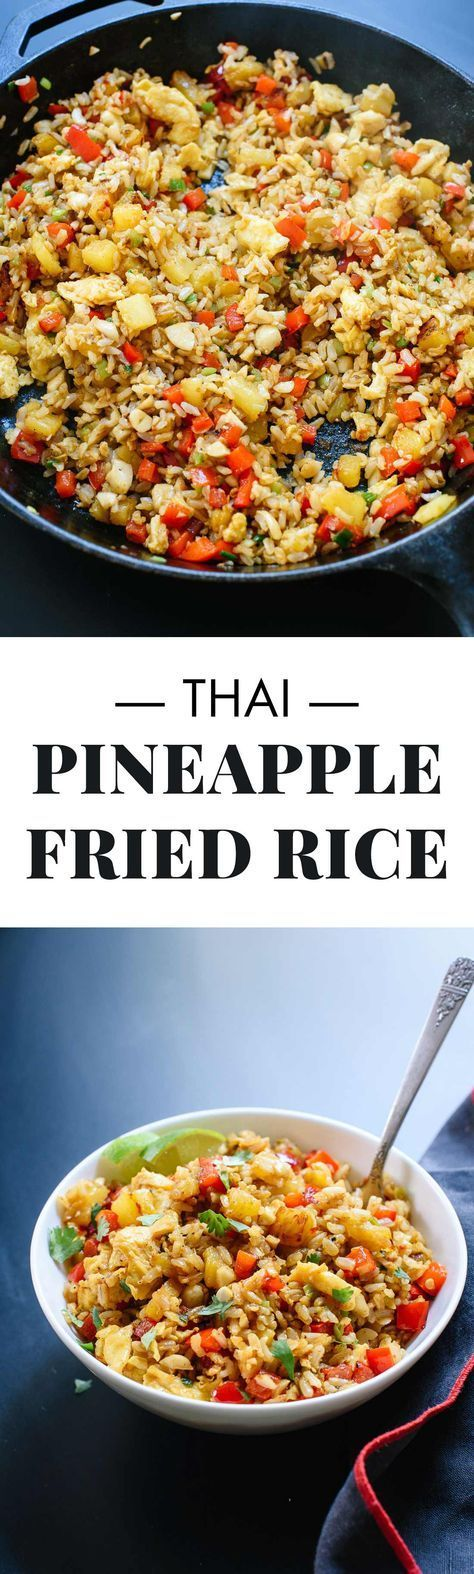 Learn how to make restaurant-quality Thai pineapple fried rice at home with this recipe! It's SO tasty and easy to make.